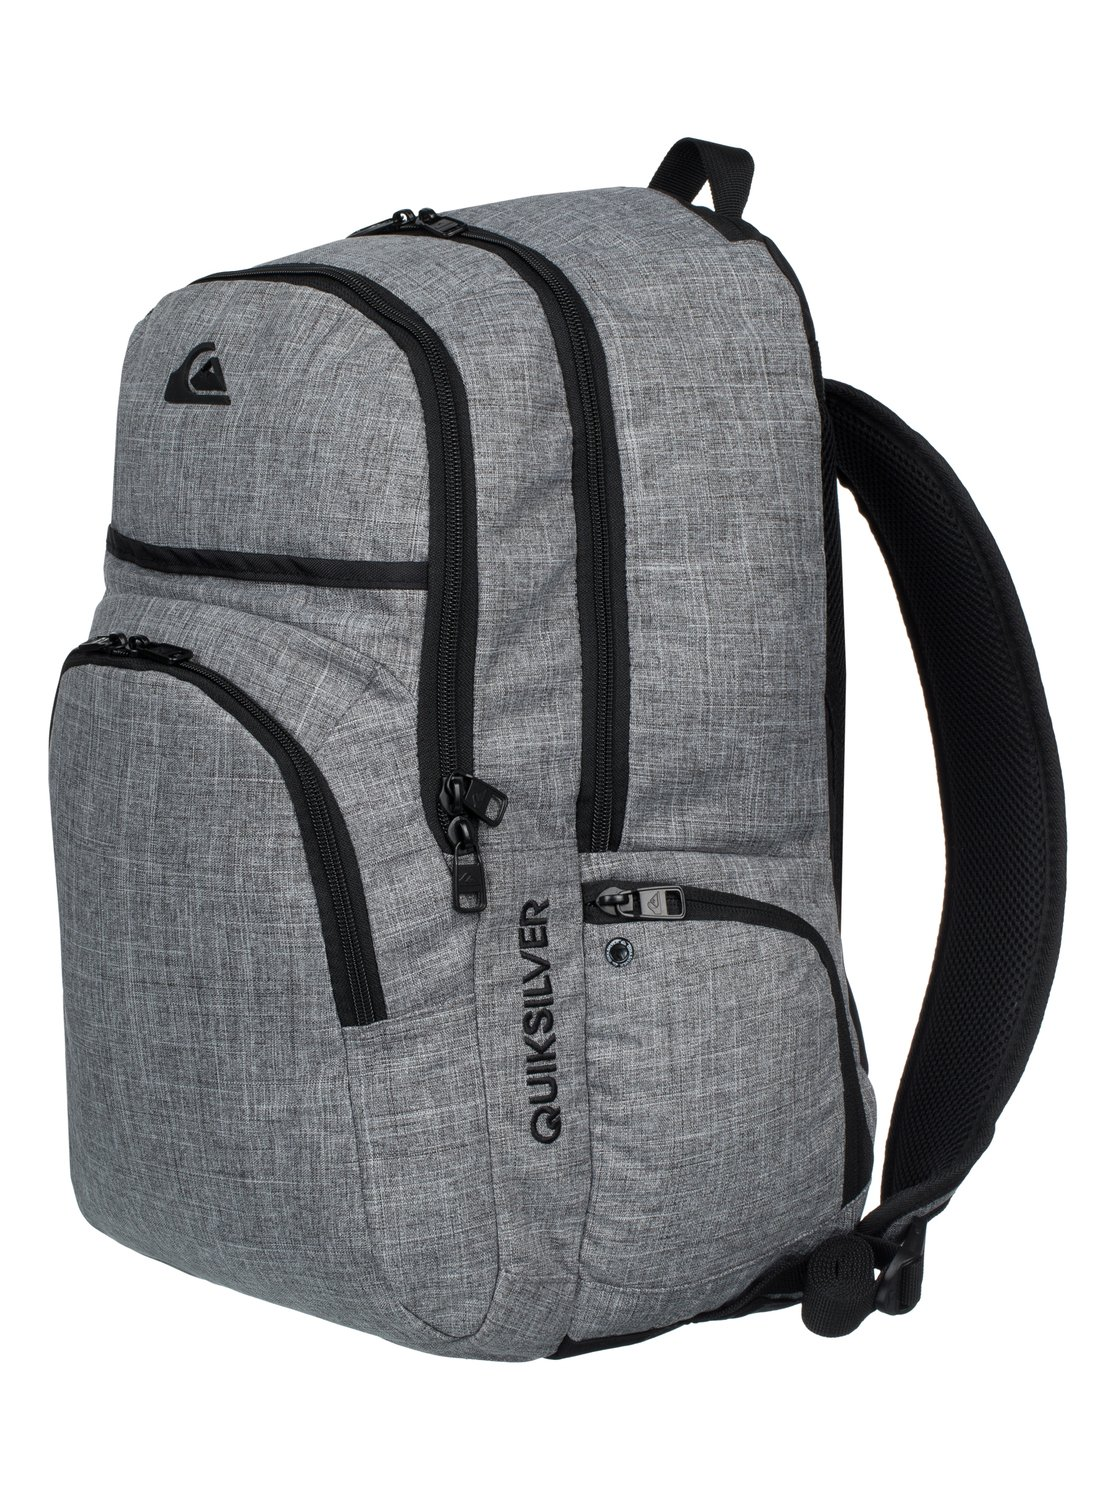 Daddy Daybag Backpack 1154042302 Quiksilver